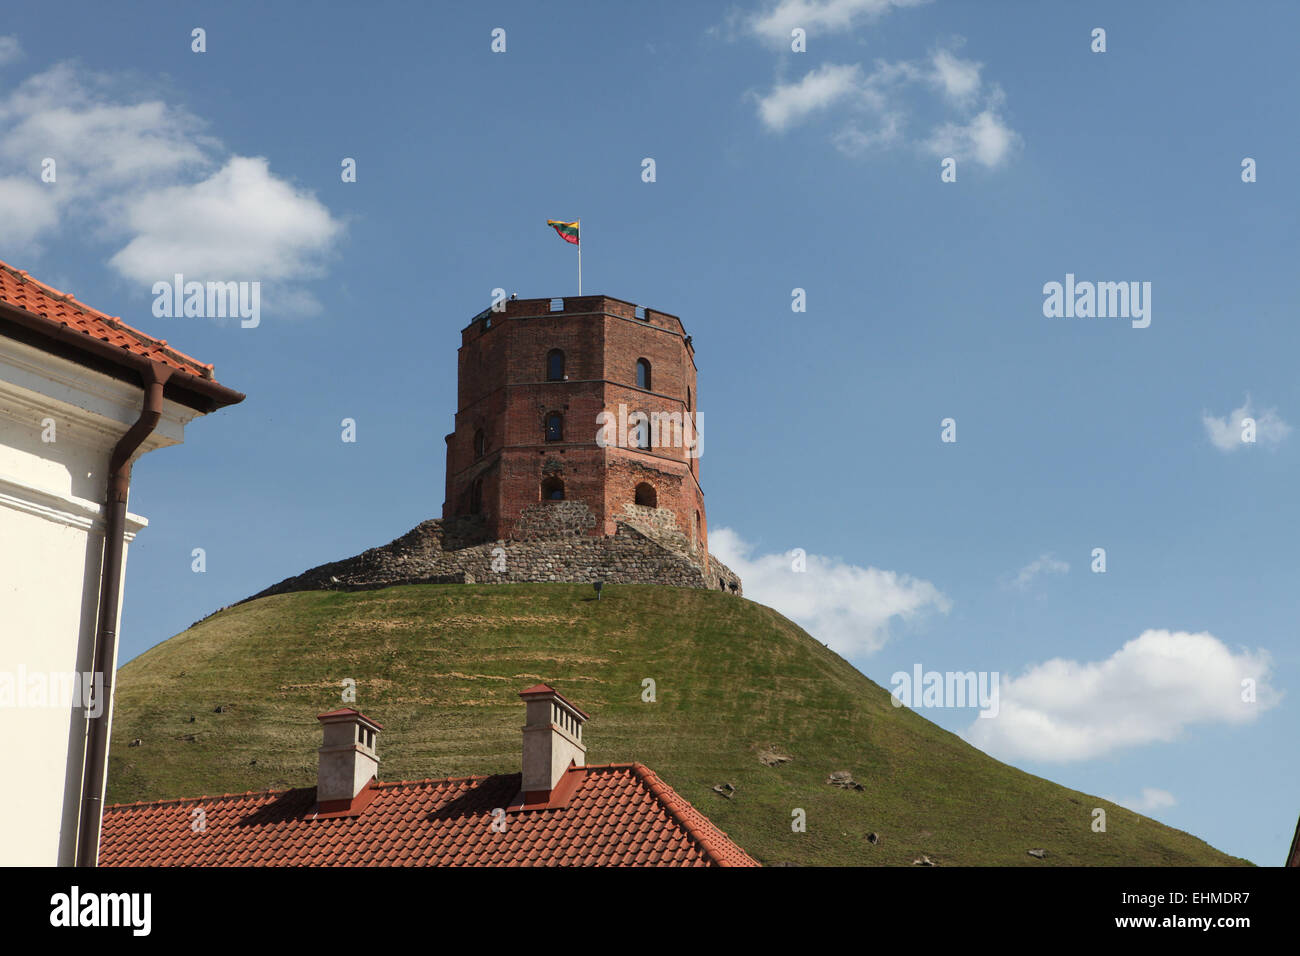 Gediminas Tower in Vilnius, Lithuania. - Stock Image